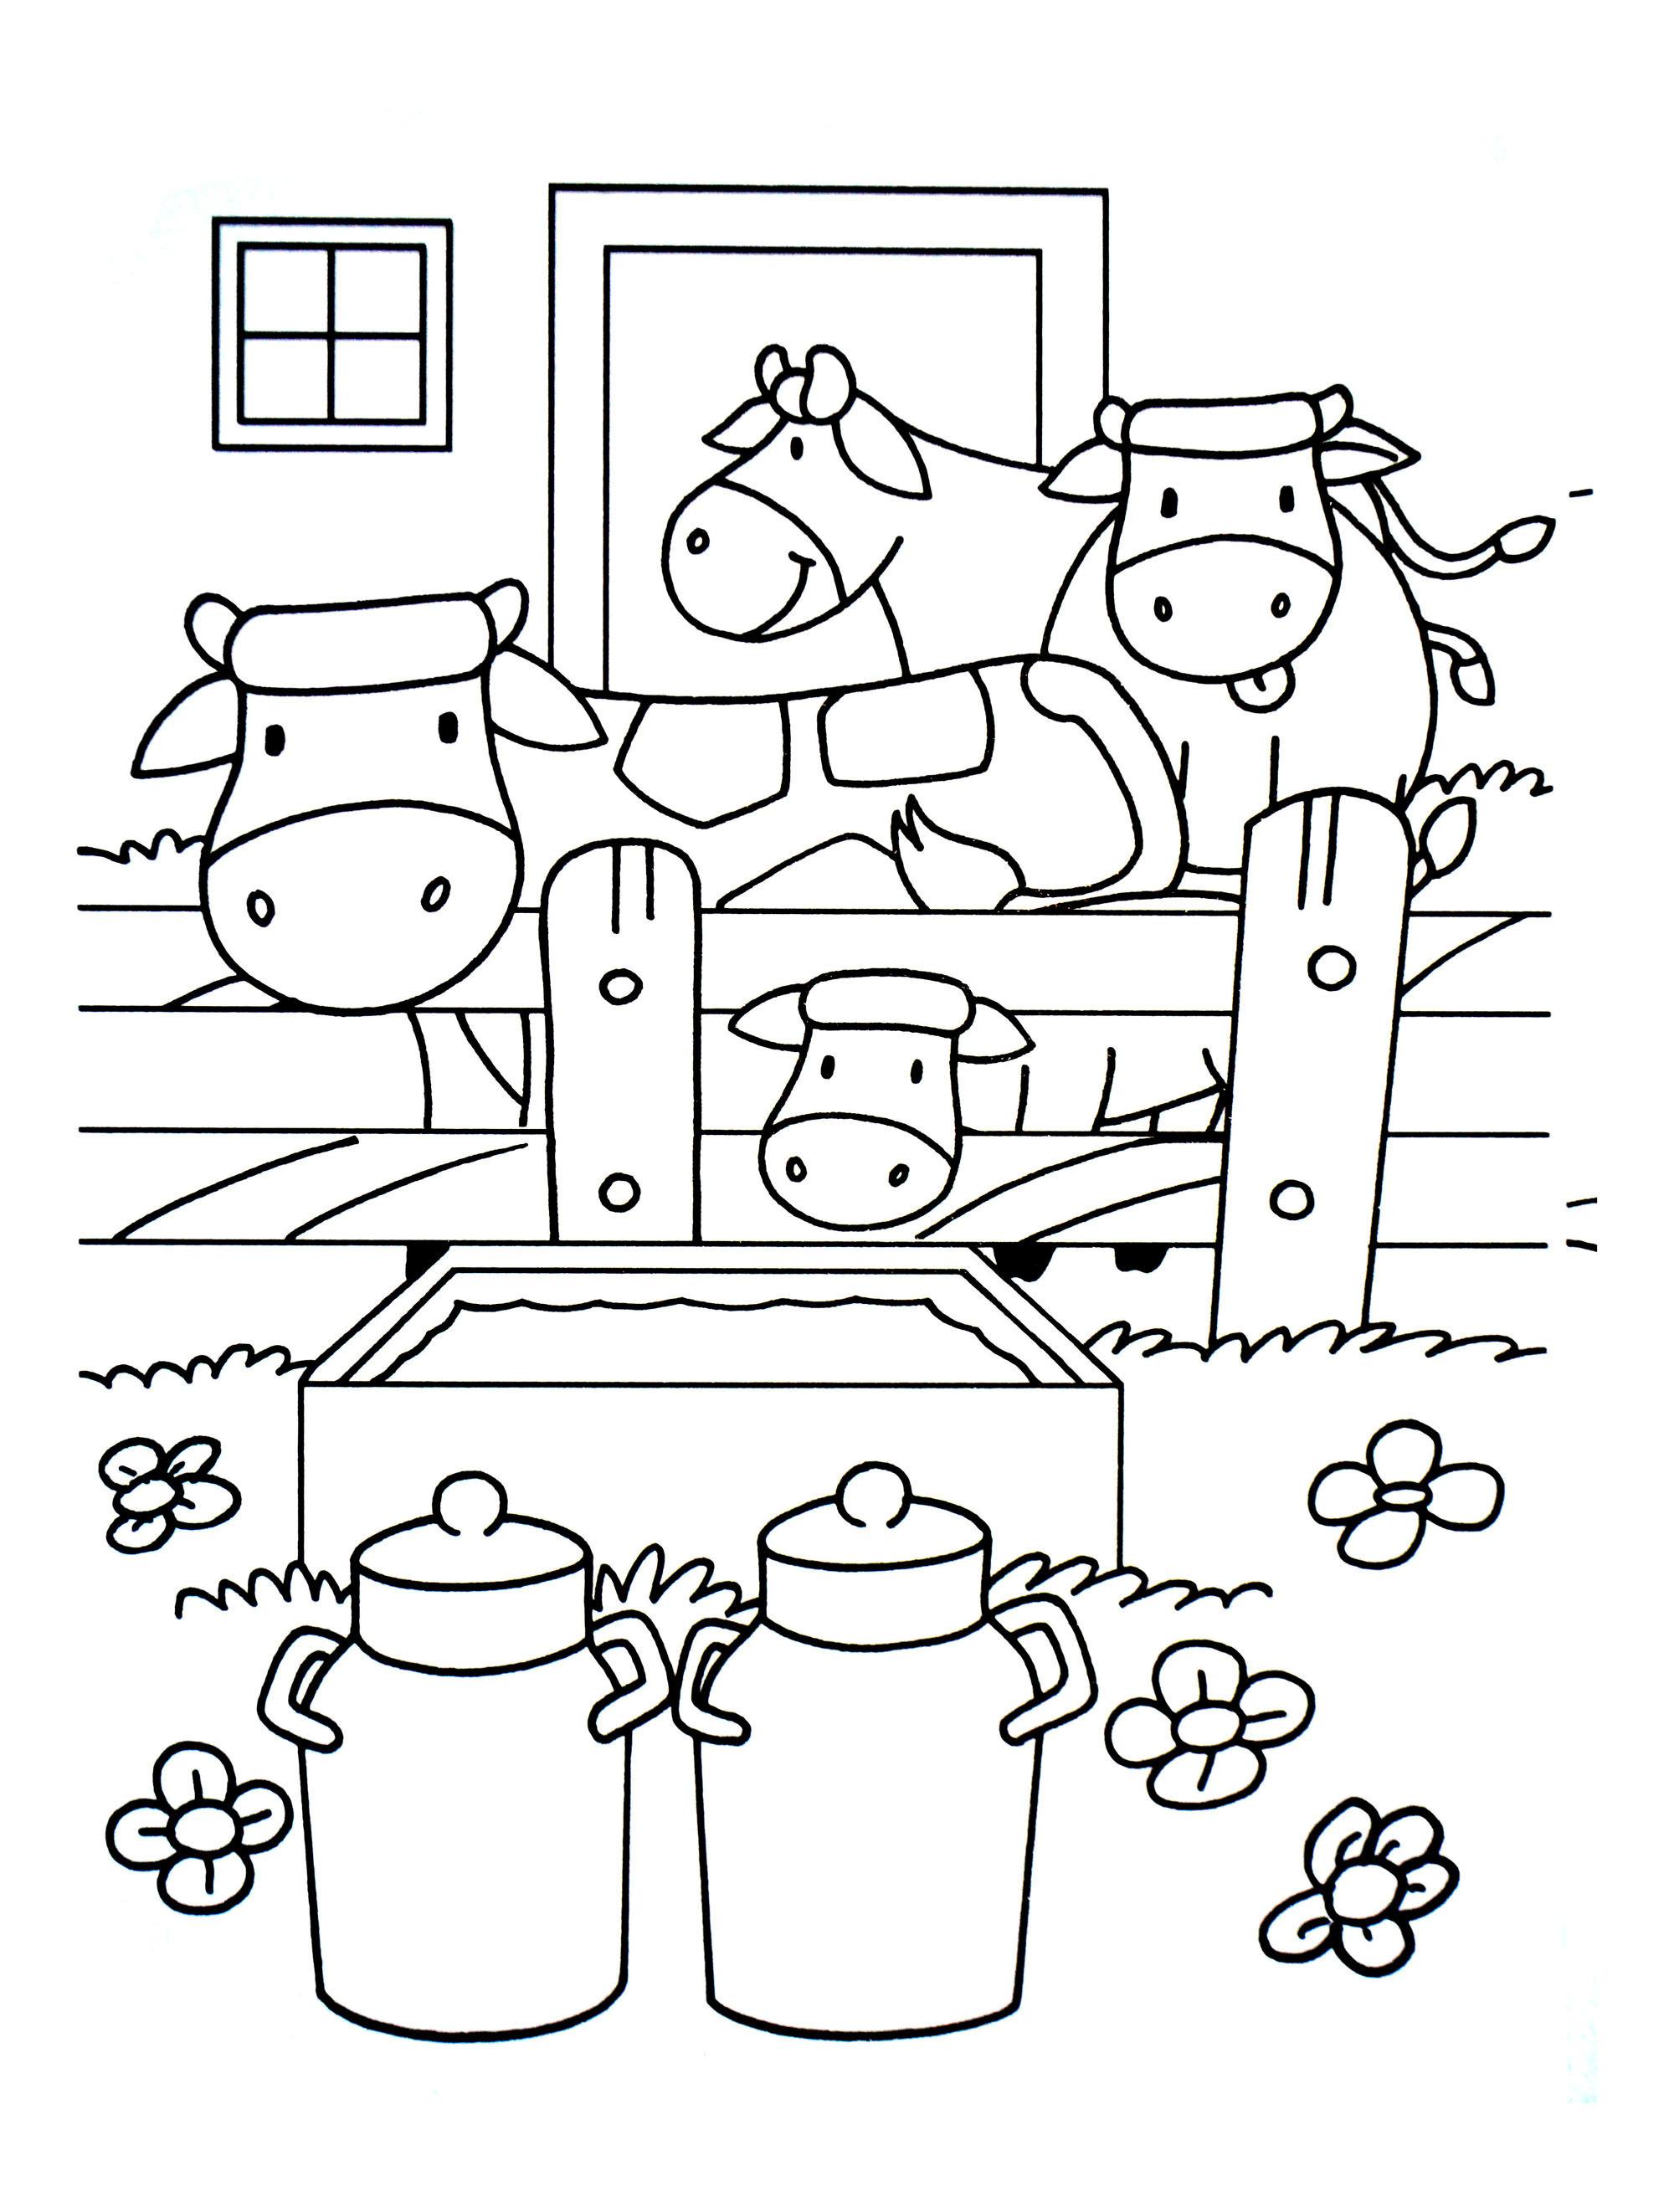 Farm coloring page to download for free